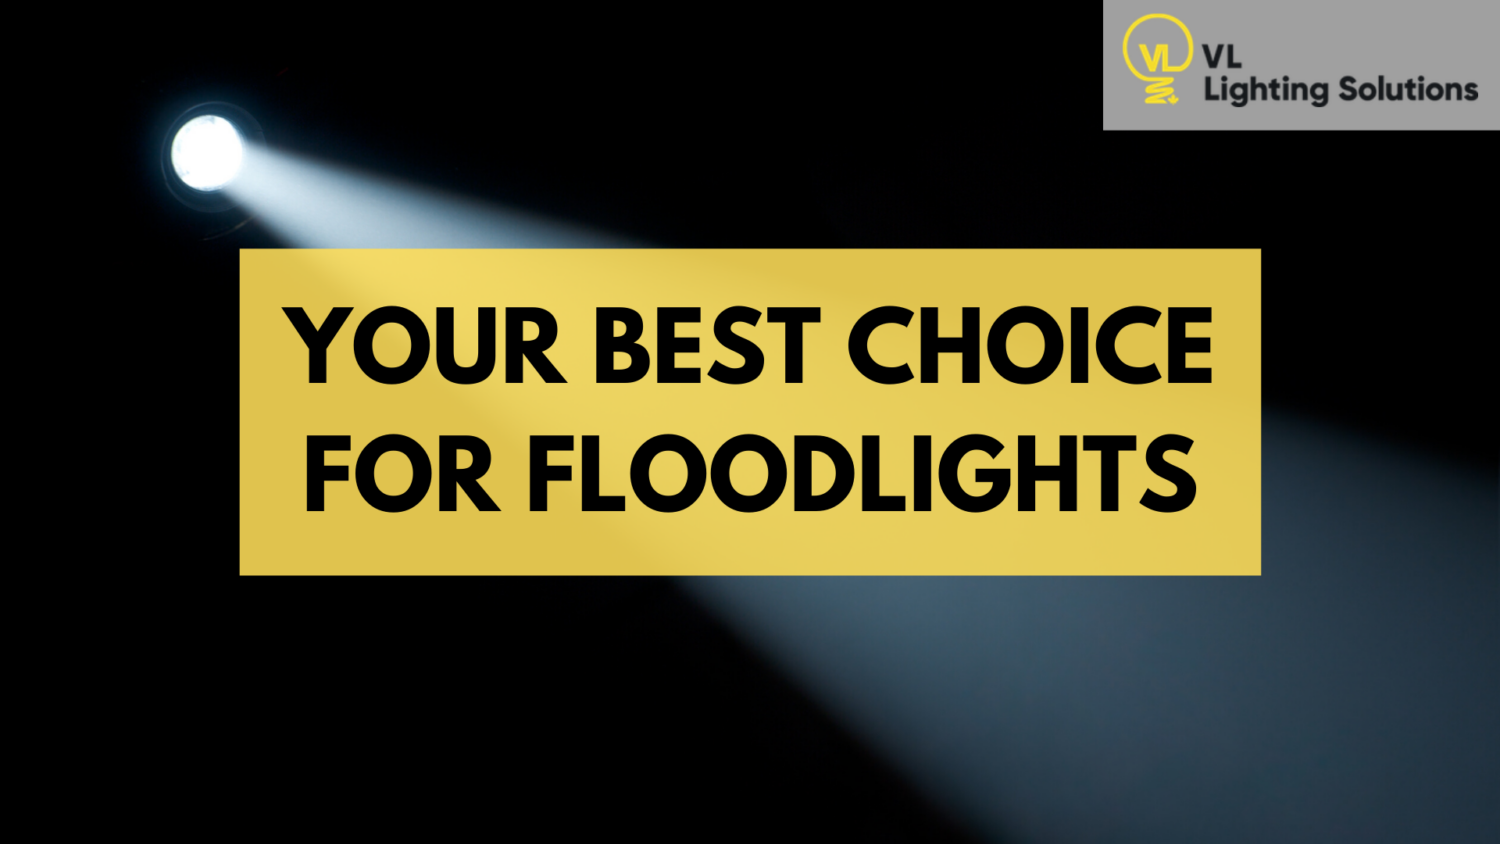 Your Best Choice for Floodlights